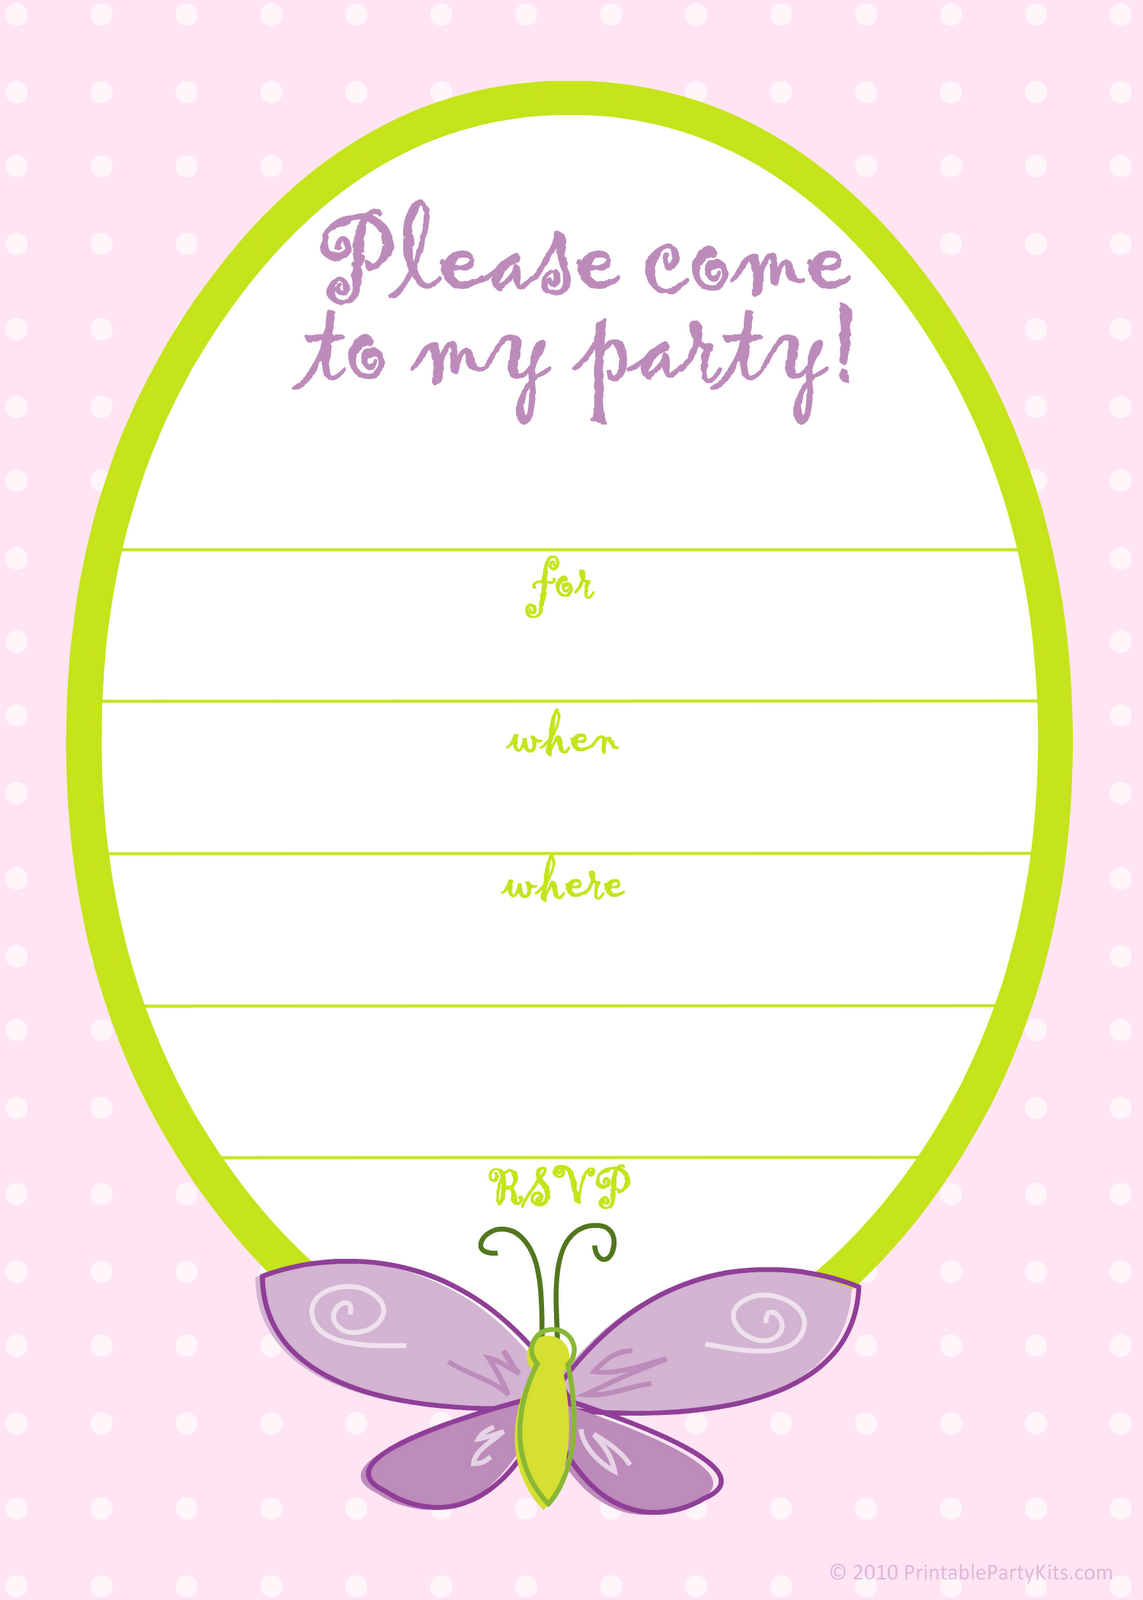 Free Printable Party Invitations Pink Butterfly Girls Birthday Invite Art